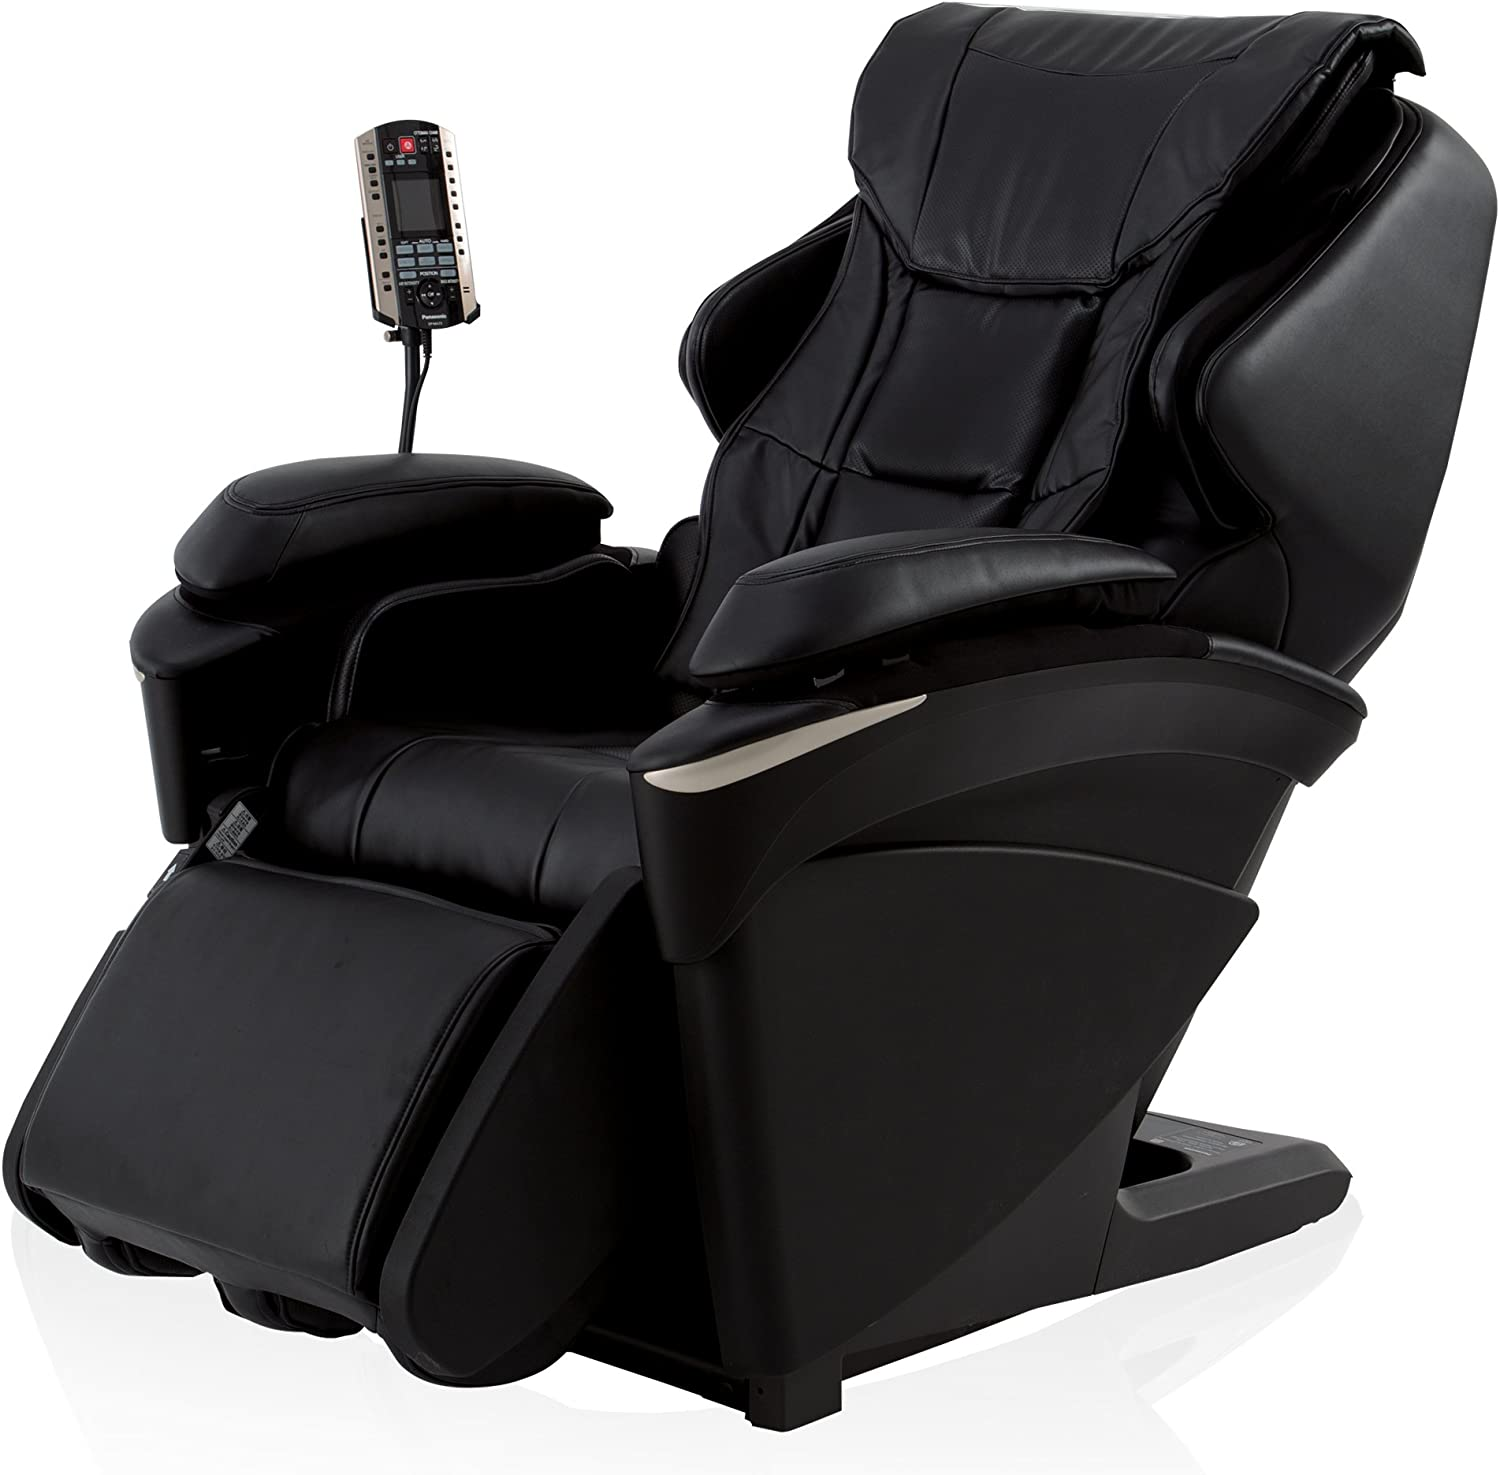 71IWZsZBvaL. AC SL1500 - Buyer's Guide: The 10 Best Massage Chairs for 2021 - ChairPicks